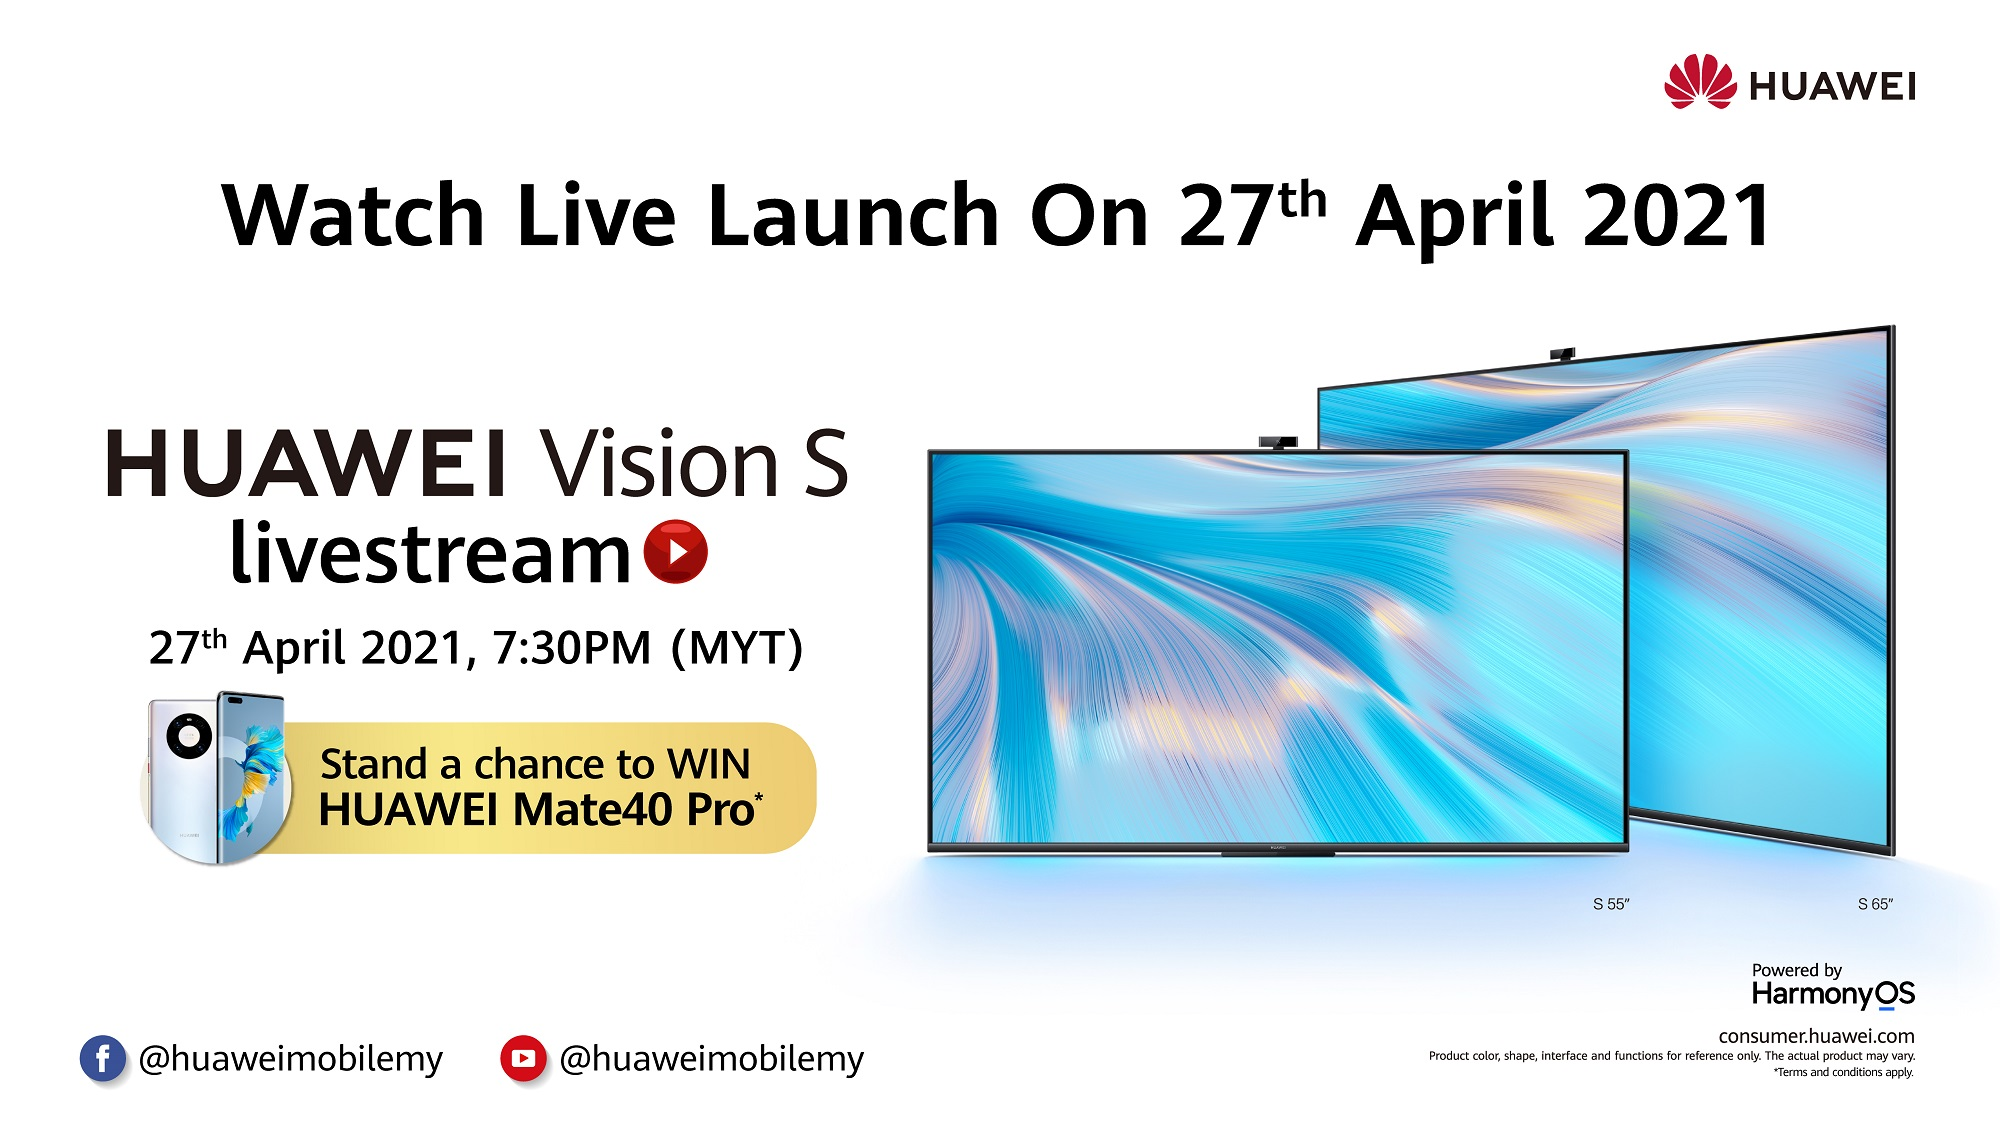 HUAWEI Vision S Series Set For Malaysian Debut, Tune Into The Online Livestream This 27 April